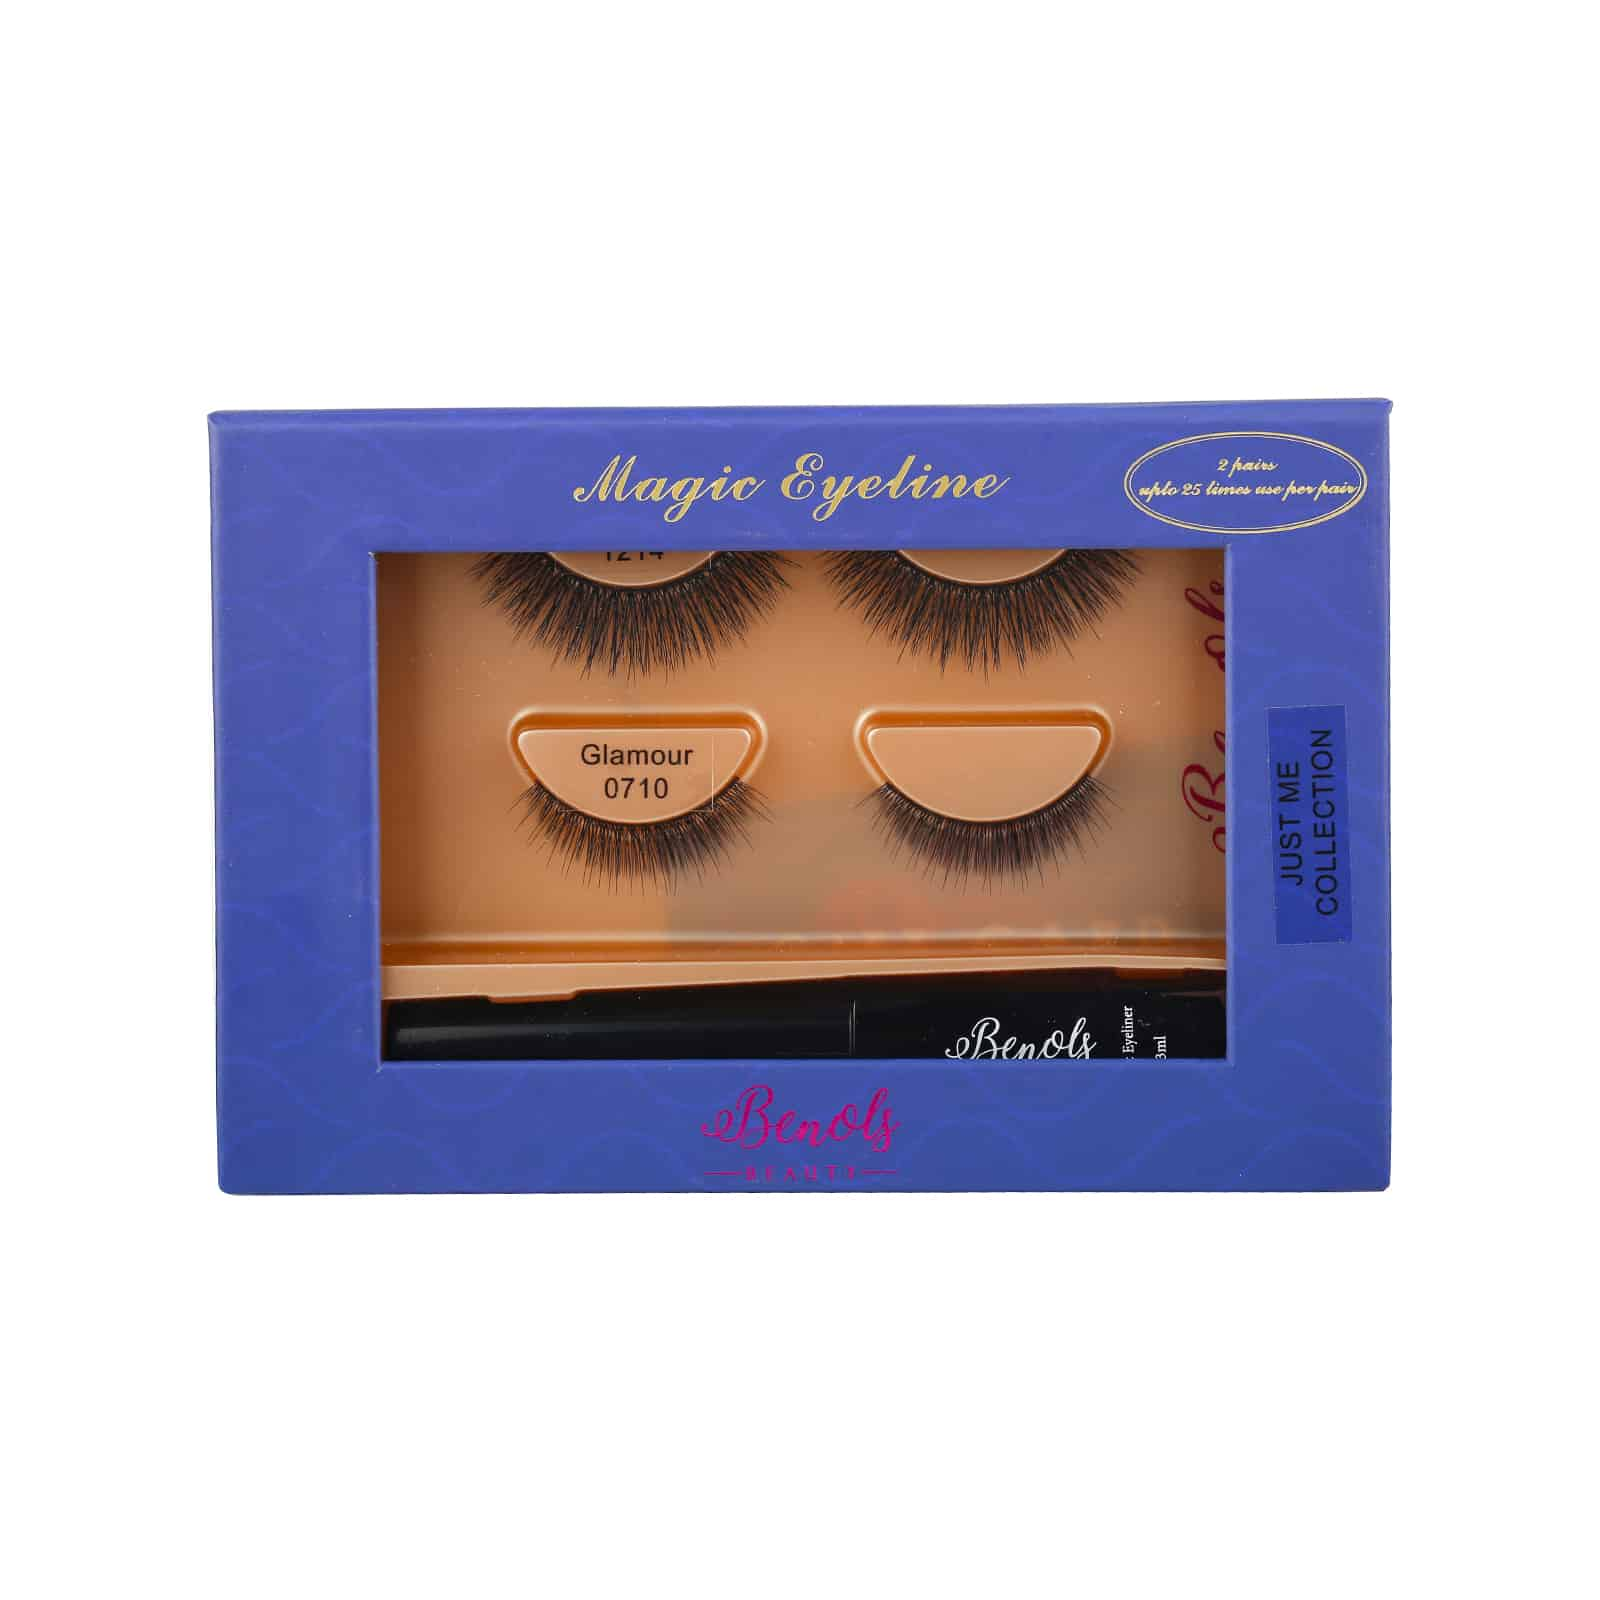 2 Pair 3D Mink Lashes with Extra Bond Magic Eyeliner (JUST ME COLLECTION) - Benols Beauty